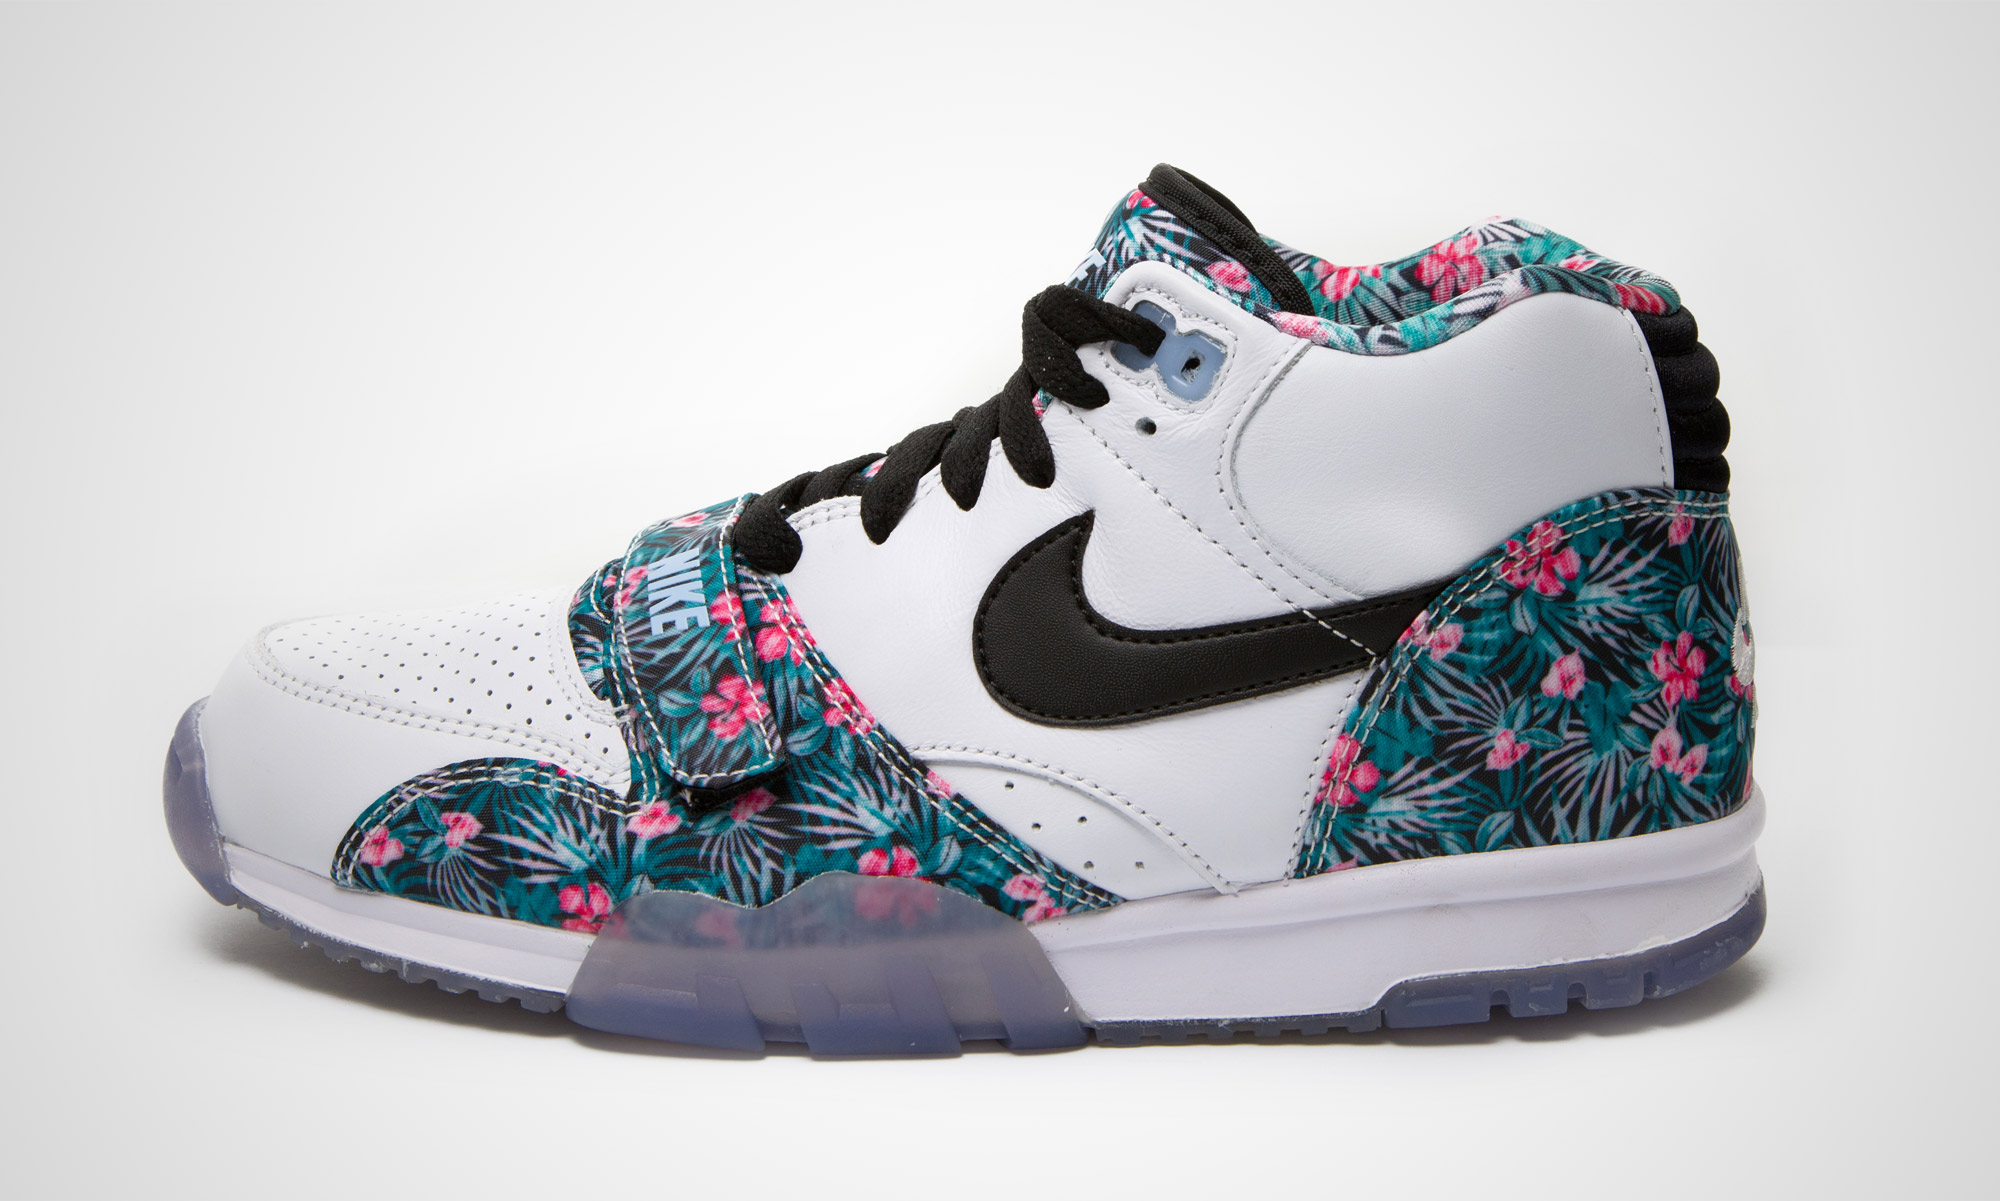 Nike Air Trainer 1 MID PRM QS Pro Bowl 7